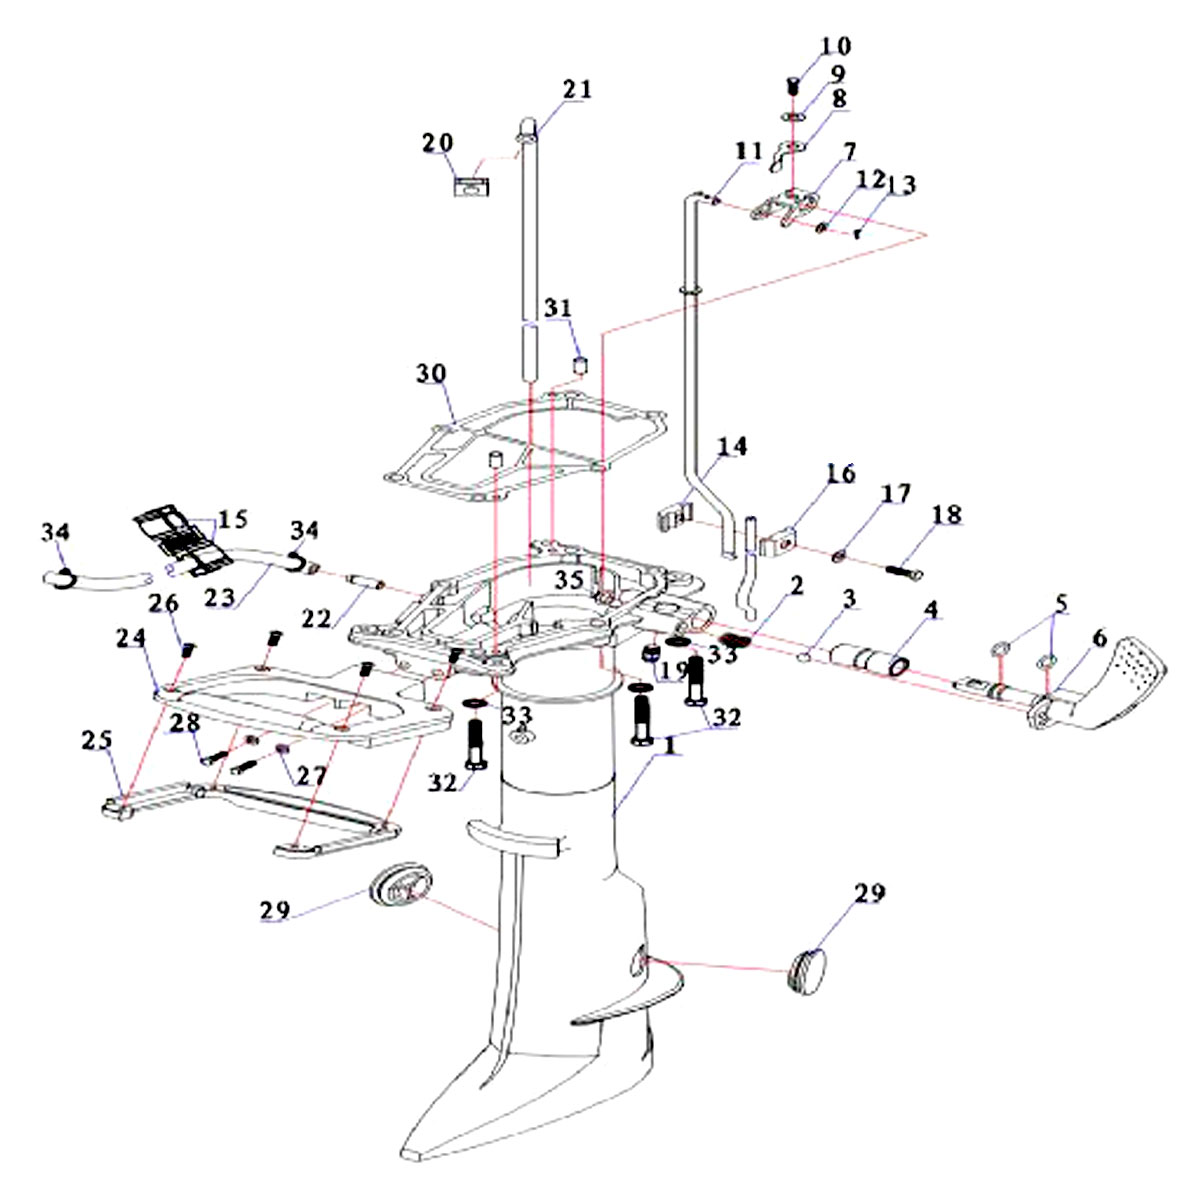 Fk 8642 Daihatsu Hijet Engine Compartment Diagram